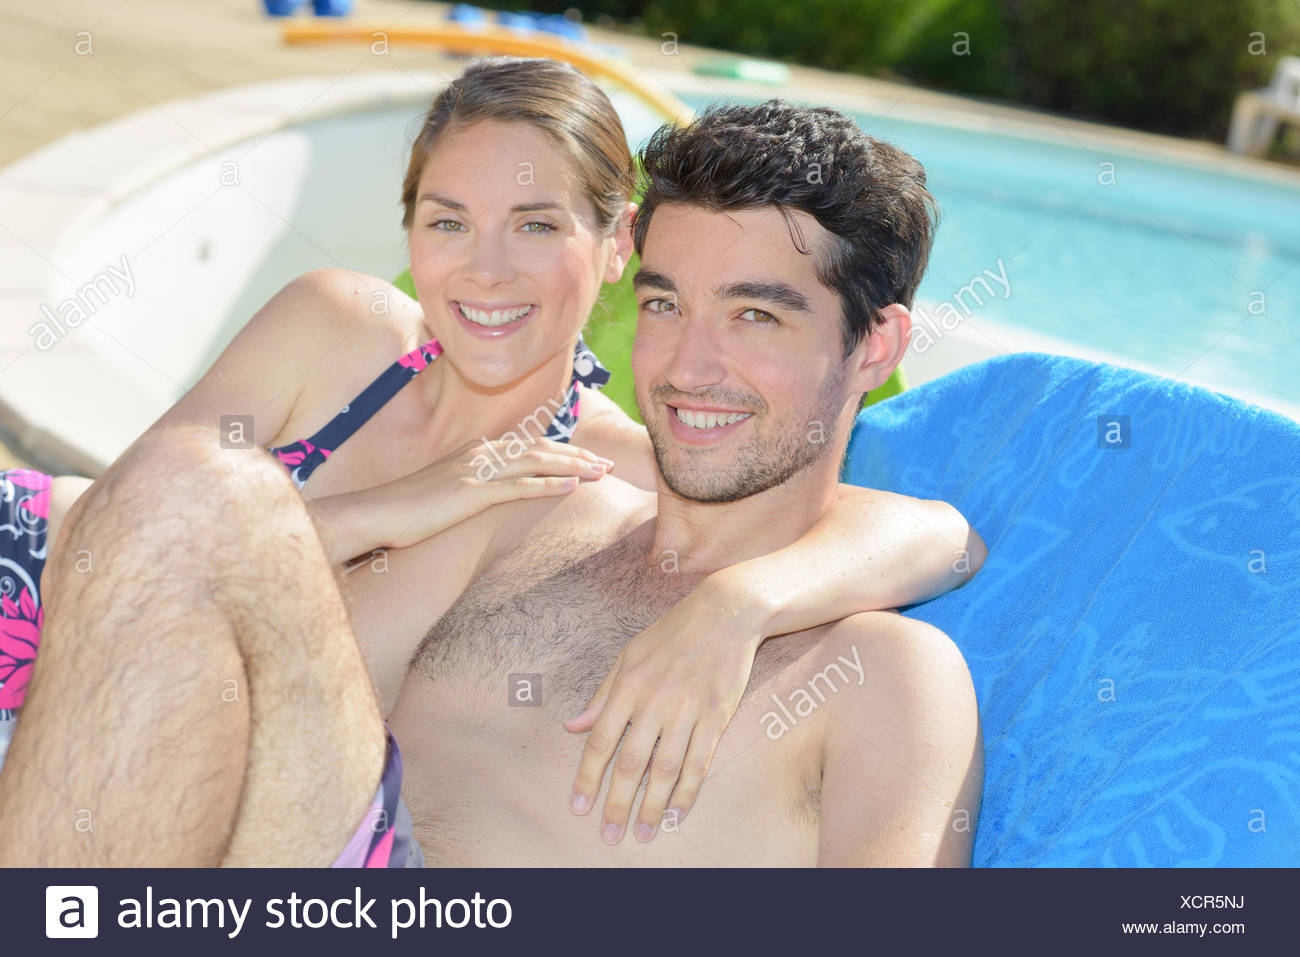 having a picture beside a swimming pool - Stock Image